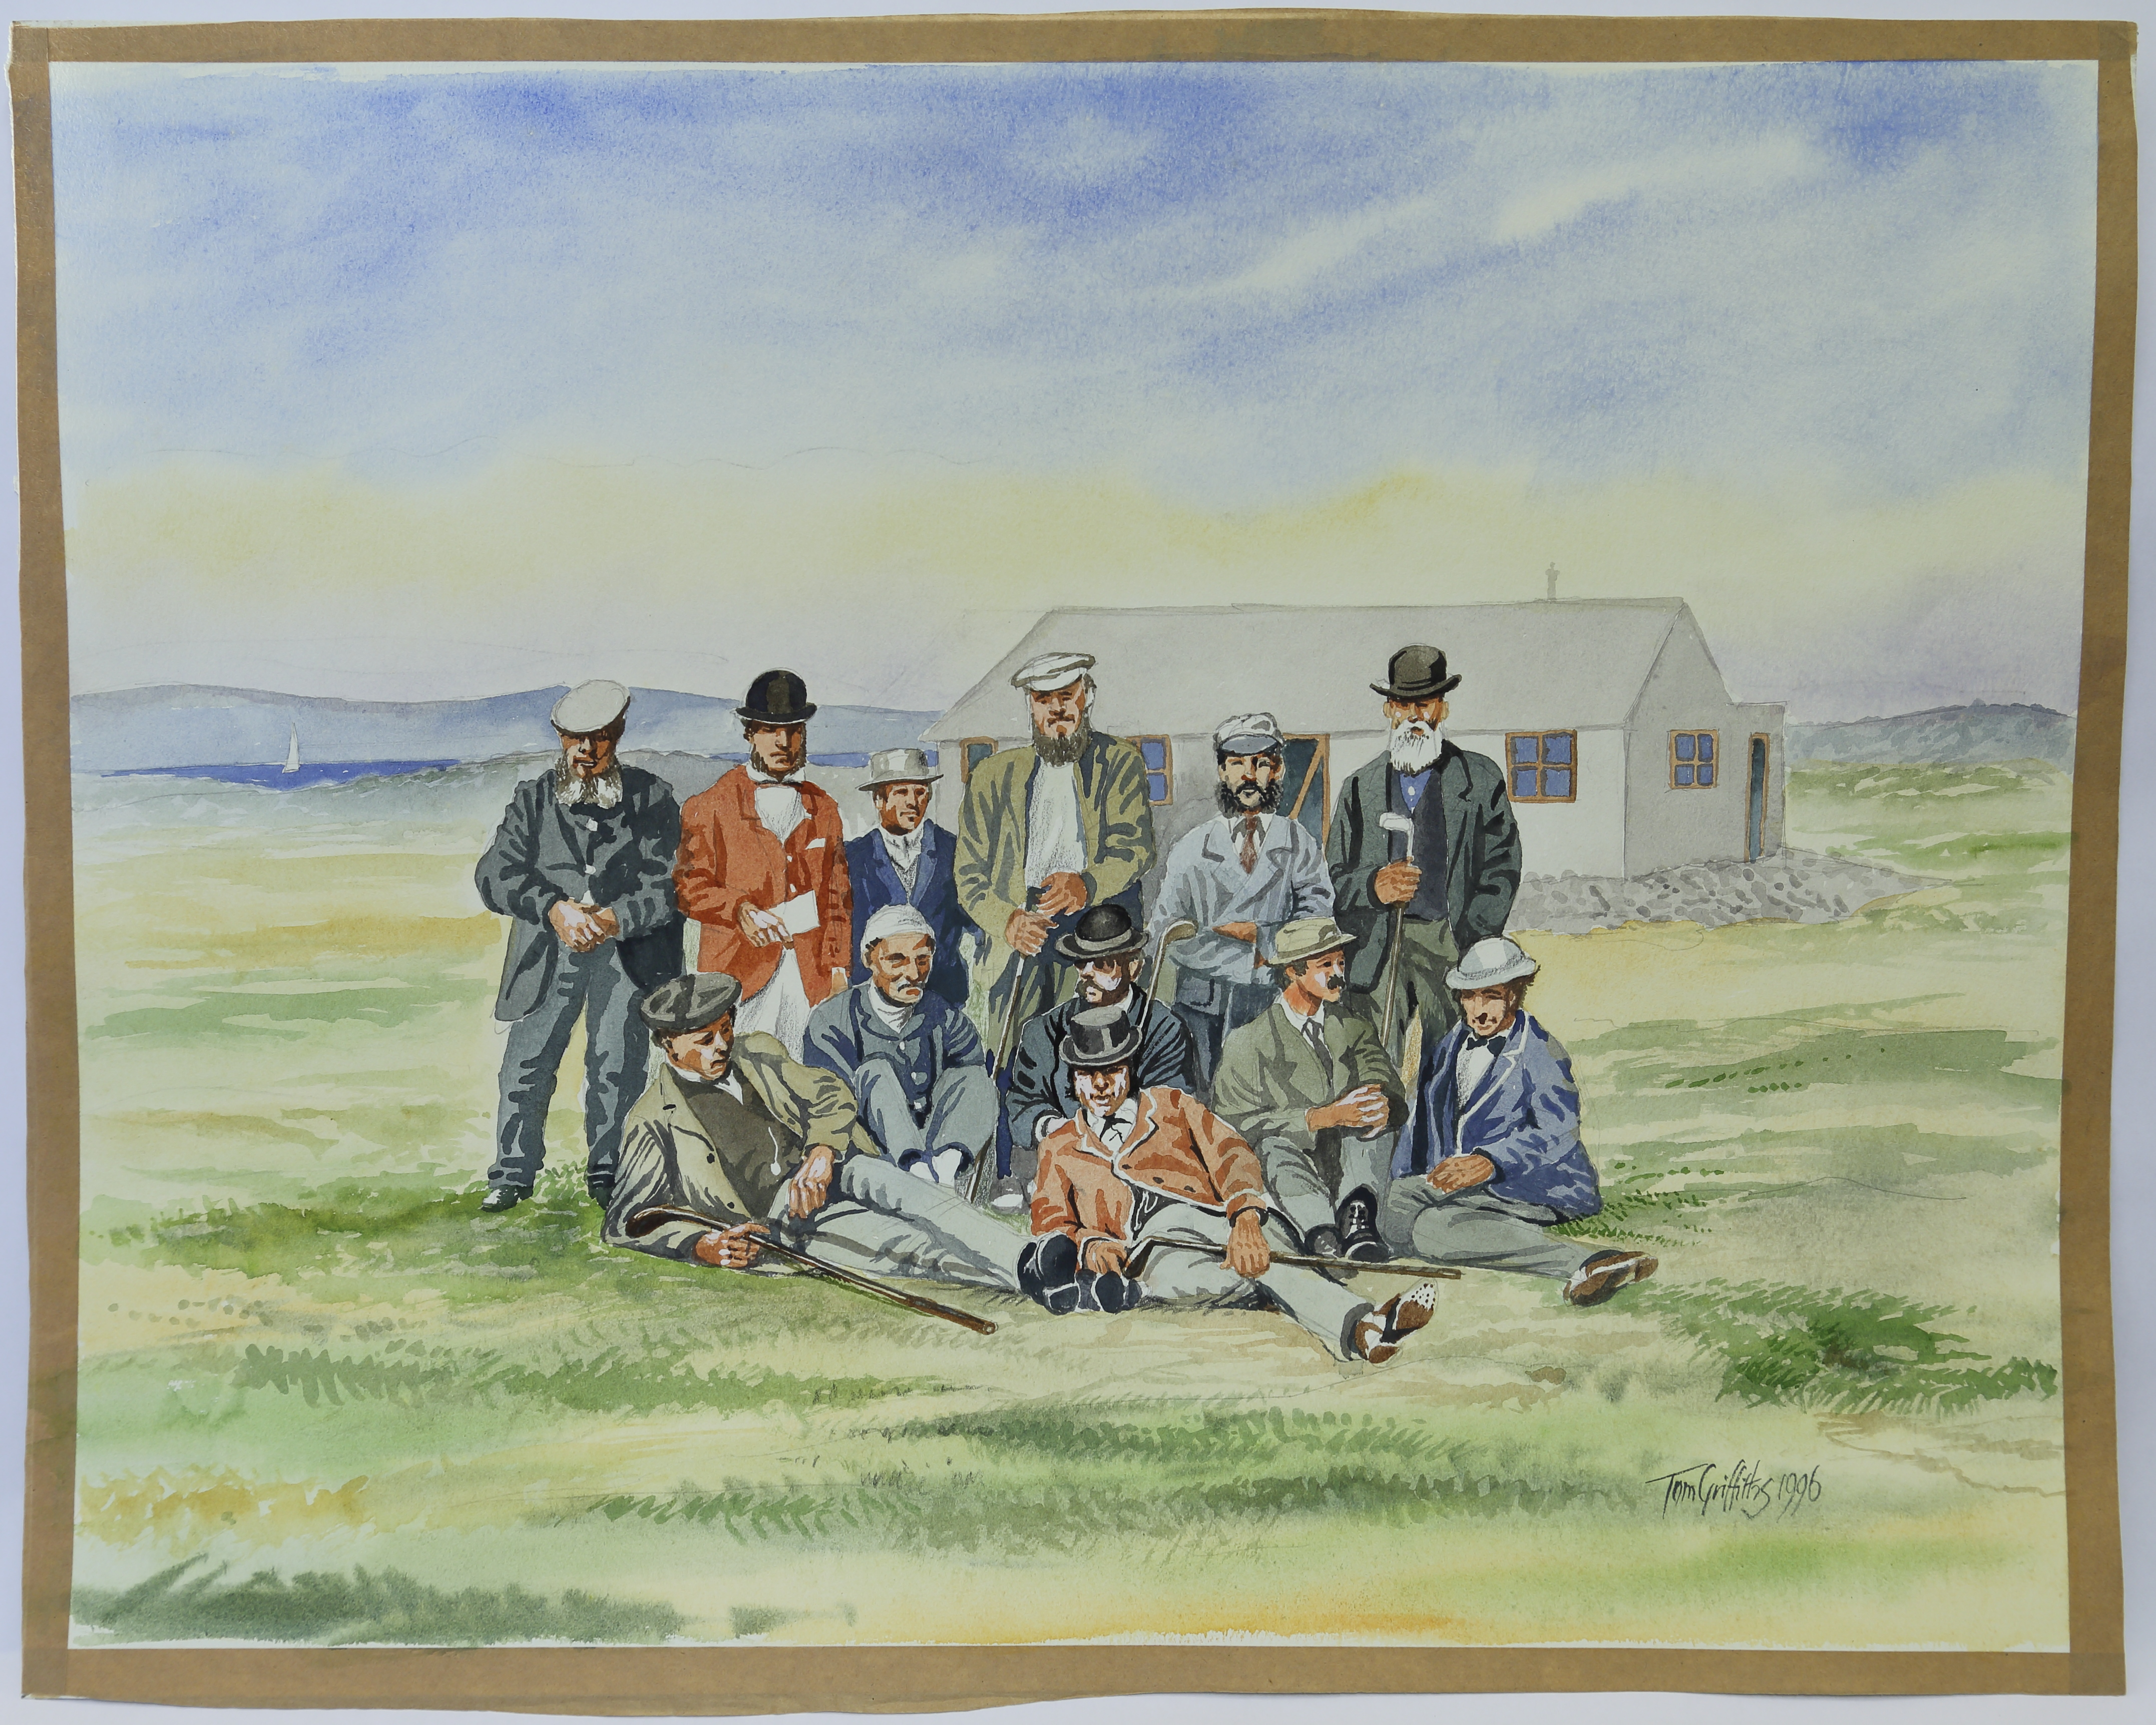 Triangular Tournament at Westward Ho! by T. Griffiths